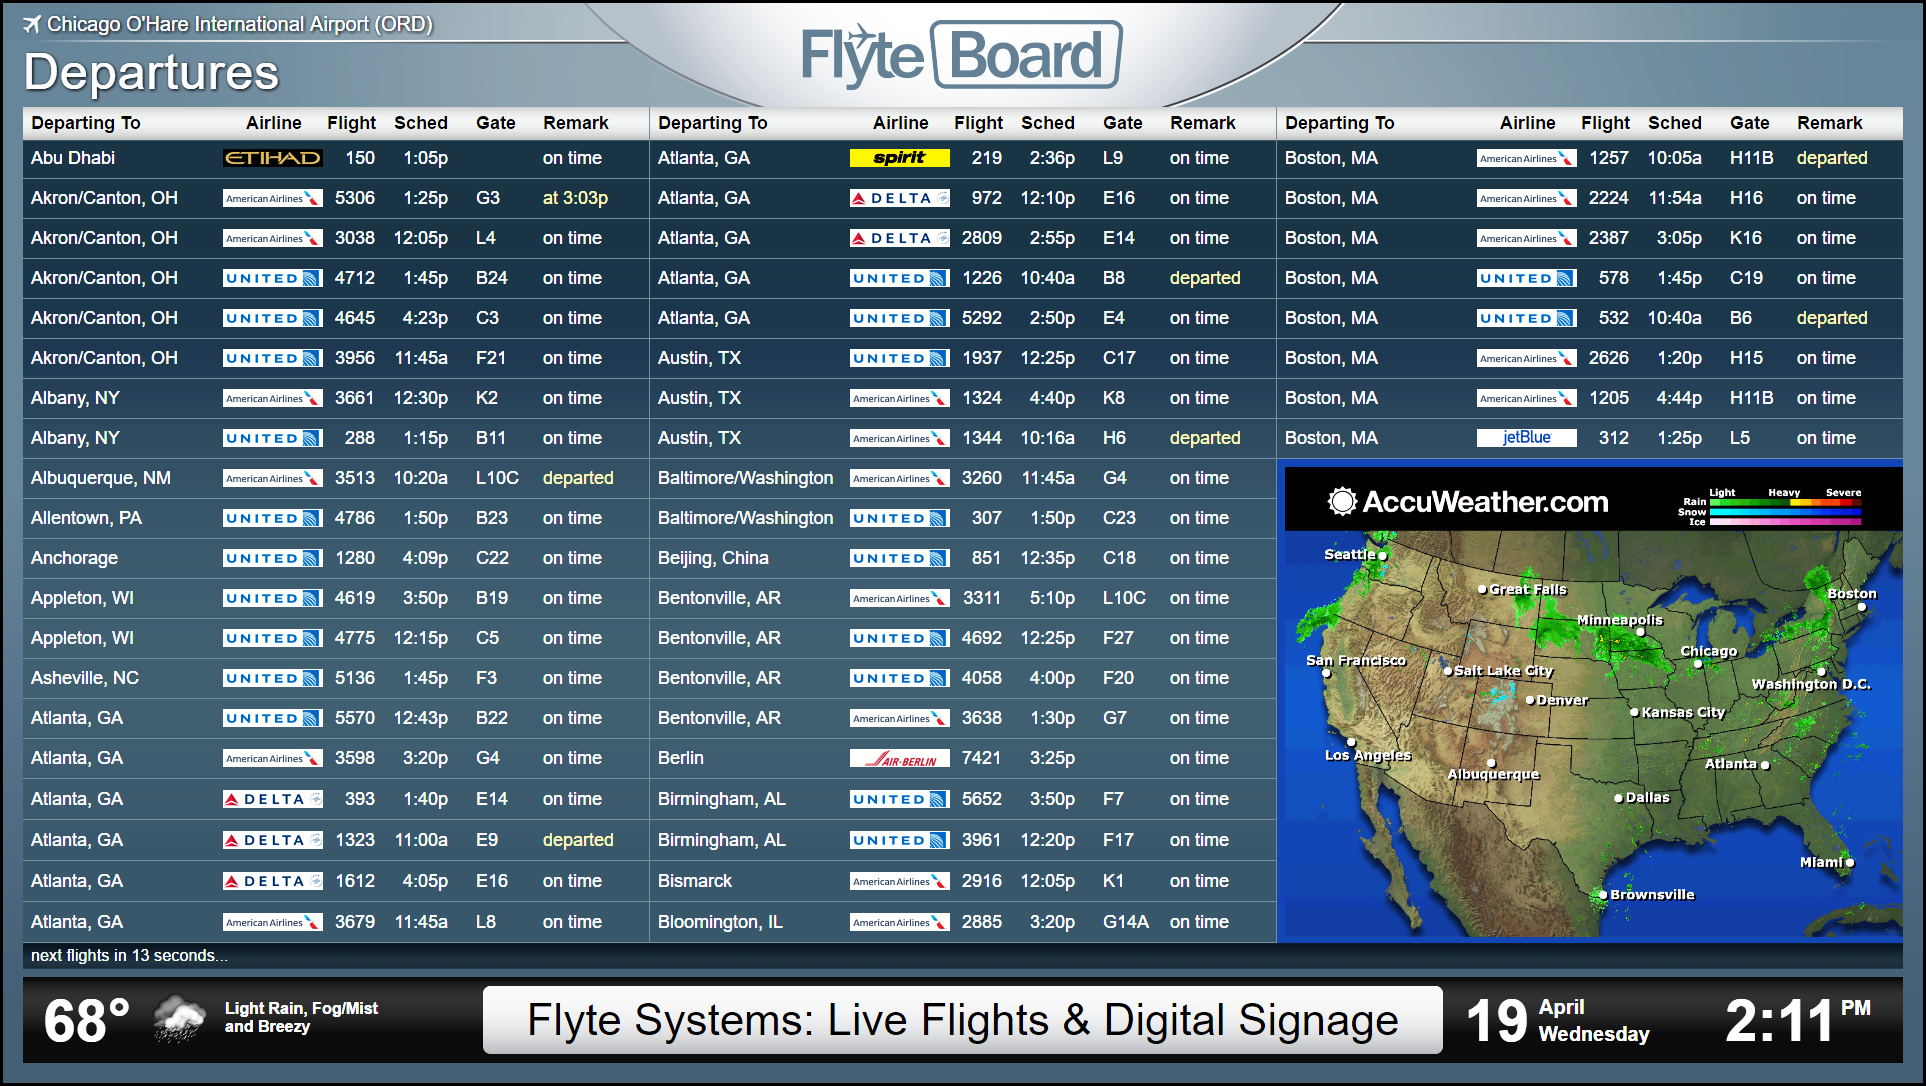 Flight Information & Airport Display Board | Flyte Systems